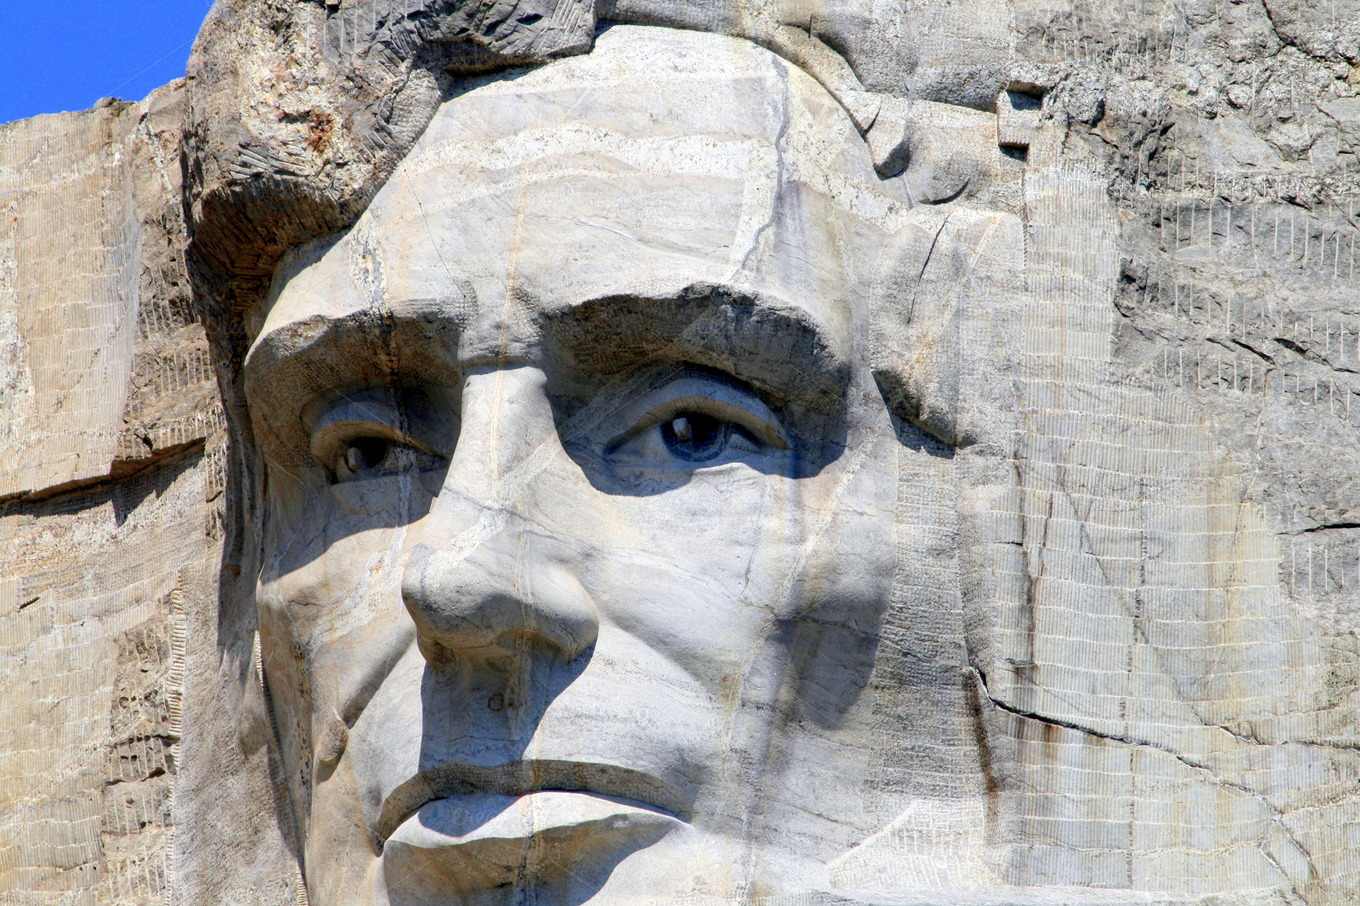 Abraham Lincoln On Mt Rushmore 1  Nature Photos On. Insulate Basement Ceiling For Sound. Estimate For Finishing A Basement. Basement Toilets. Bat In Basement. Basement Apartments In Toronto. Hillside Walkout Basement House Plans. Flooring Ideas For Basements. Wood Flooring For Basements